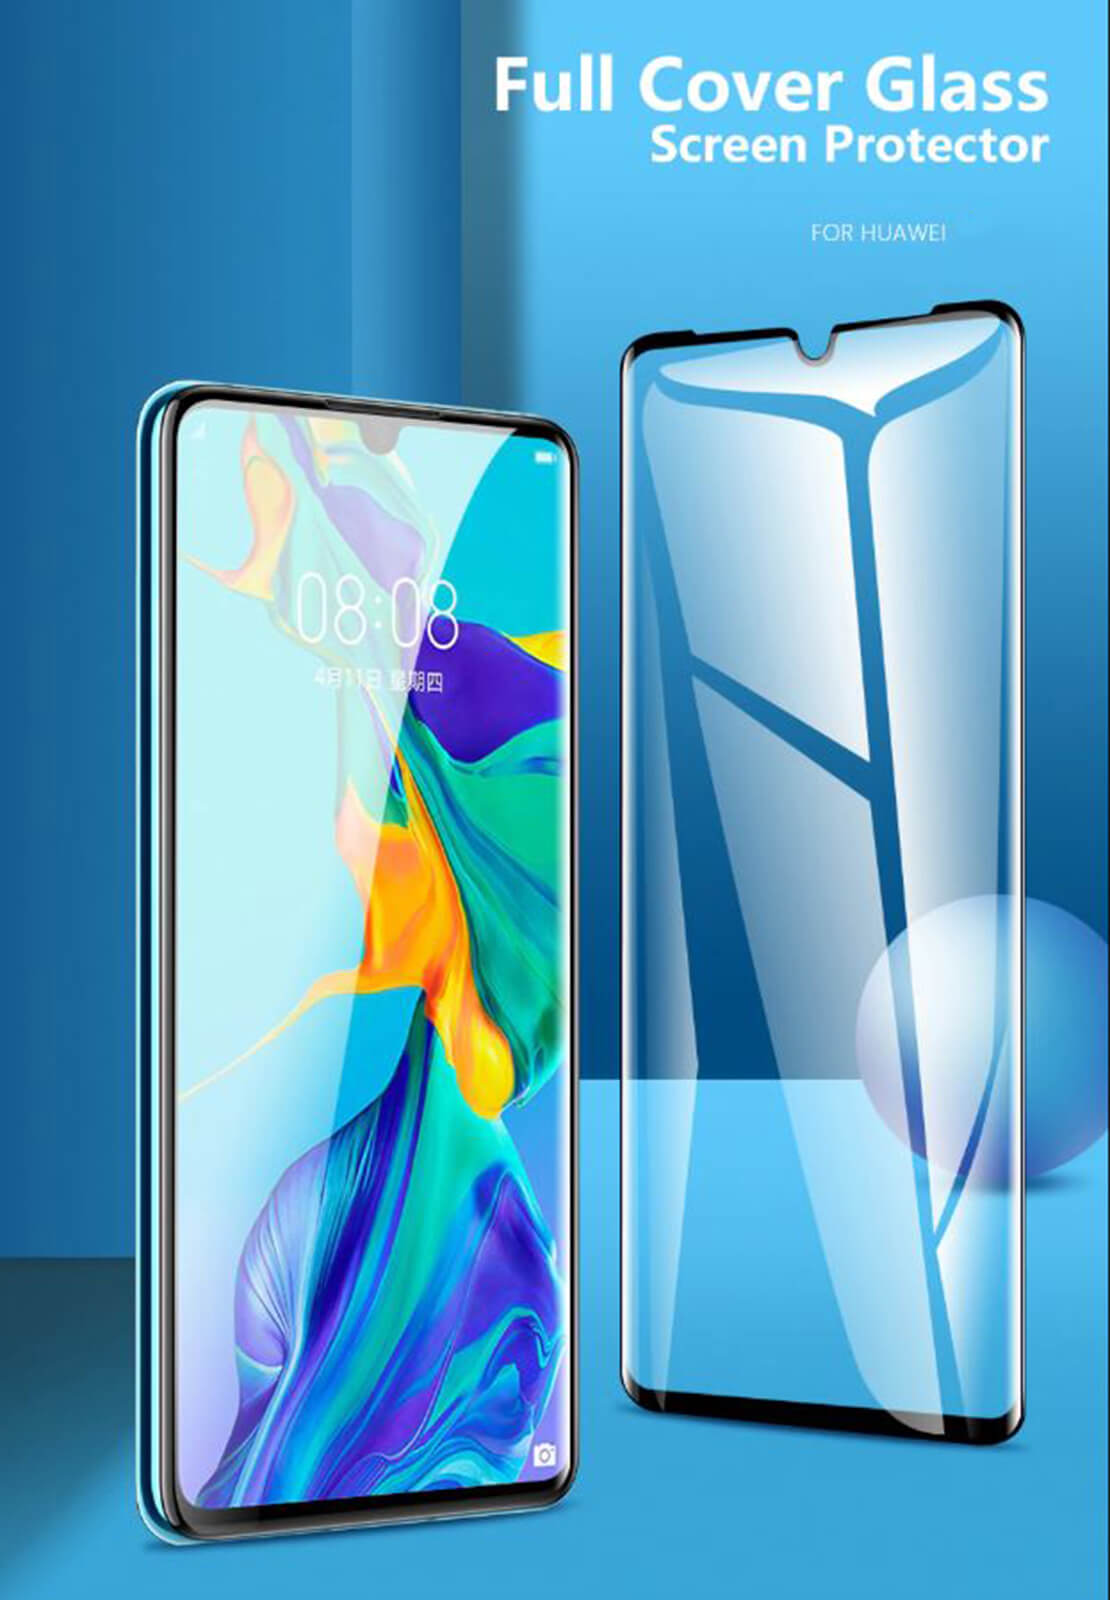 Full-Coverage-3D-Tempered-Glass-Screen-Protector-For-Huawei-P30-P20-Pro-Mate-20 Indexbild 14